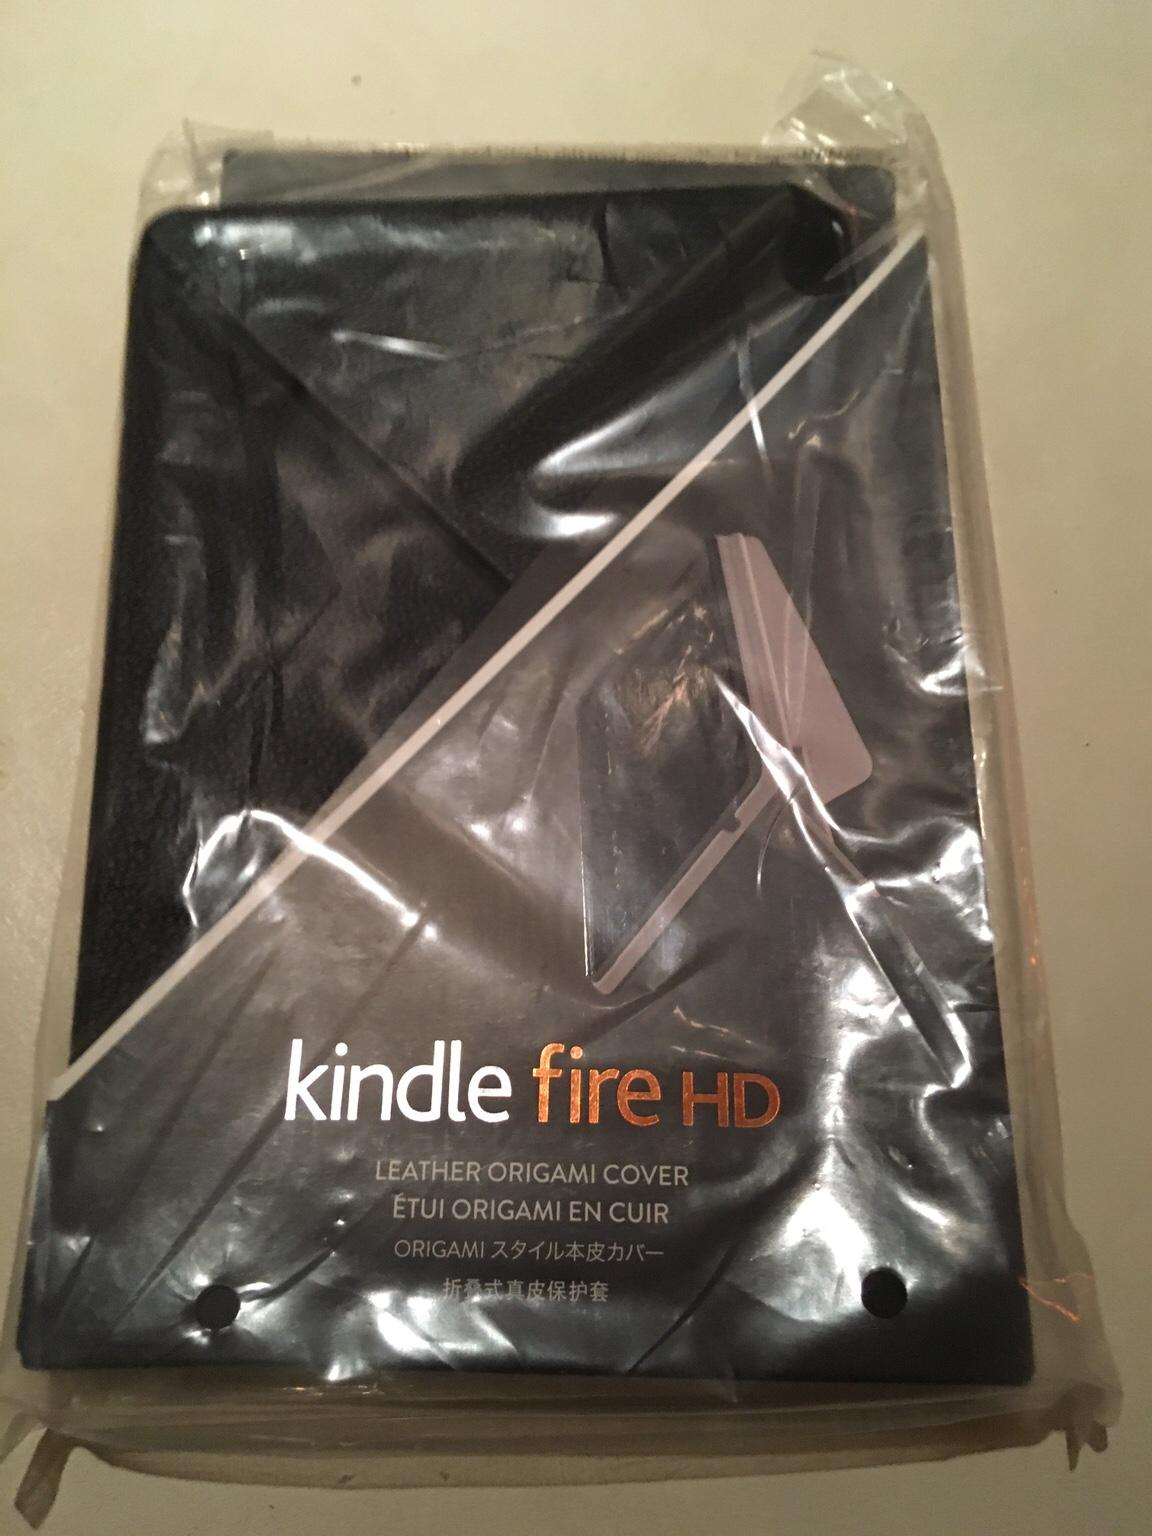 Kindle Fire HDX 7 Origami Slim Case Cover | 1536x1152